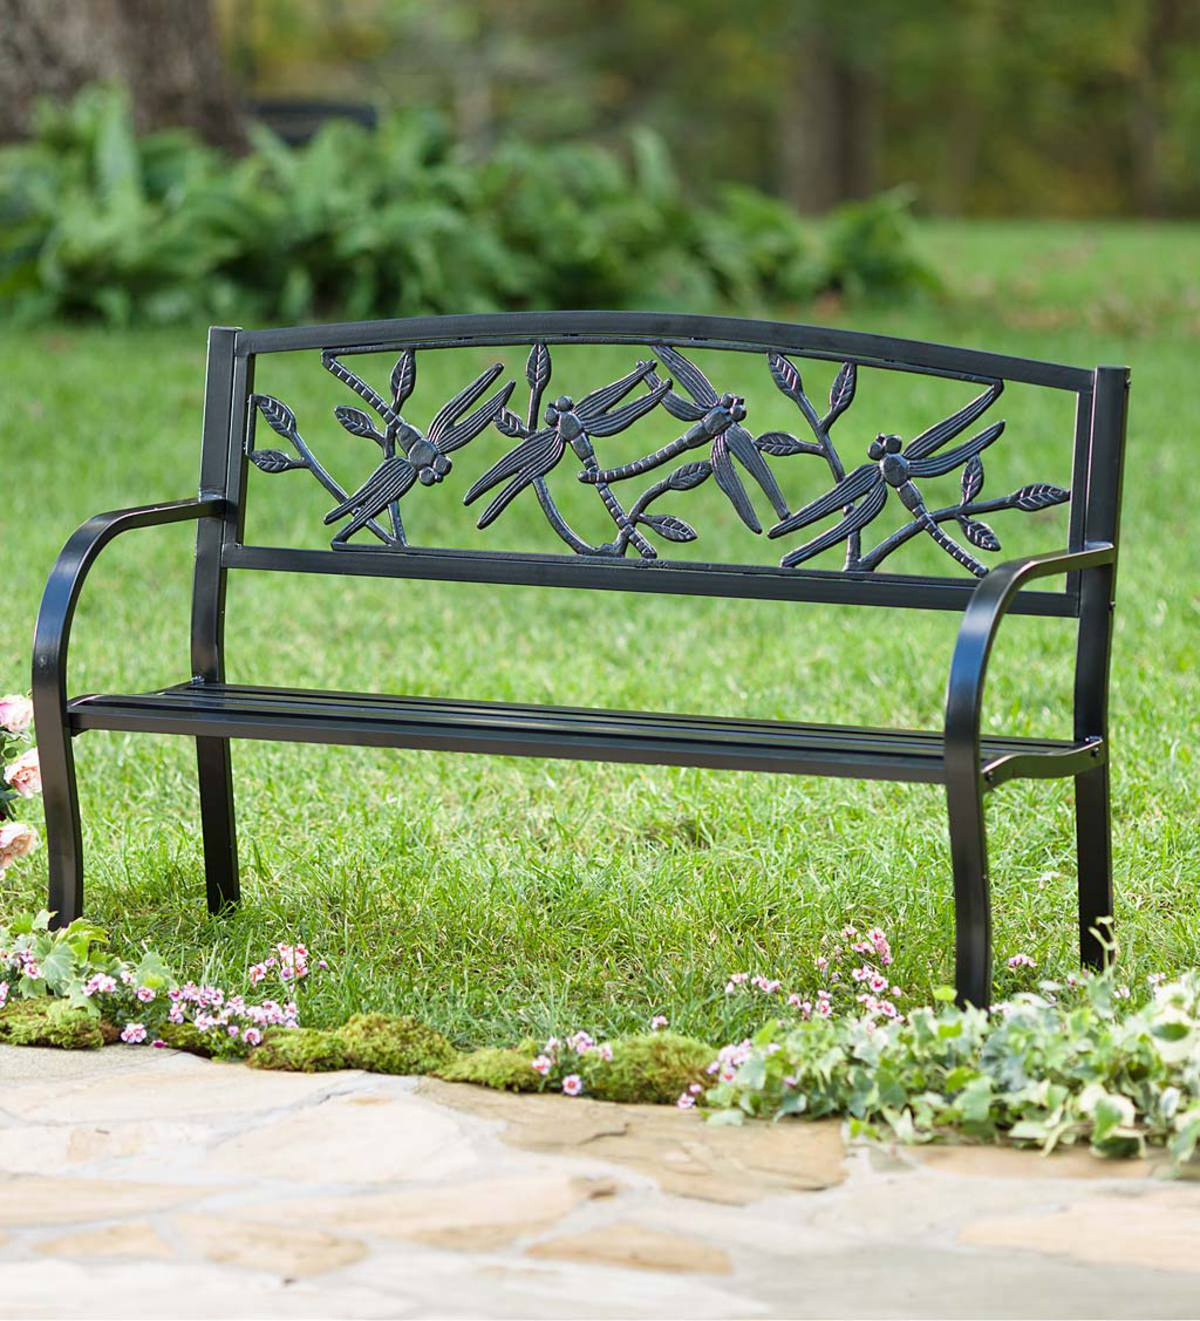 2019 Blooming Iron Garden Benches With Dragonfly Metal Garden Bench (View 15 of 30)